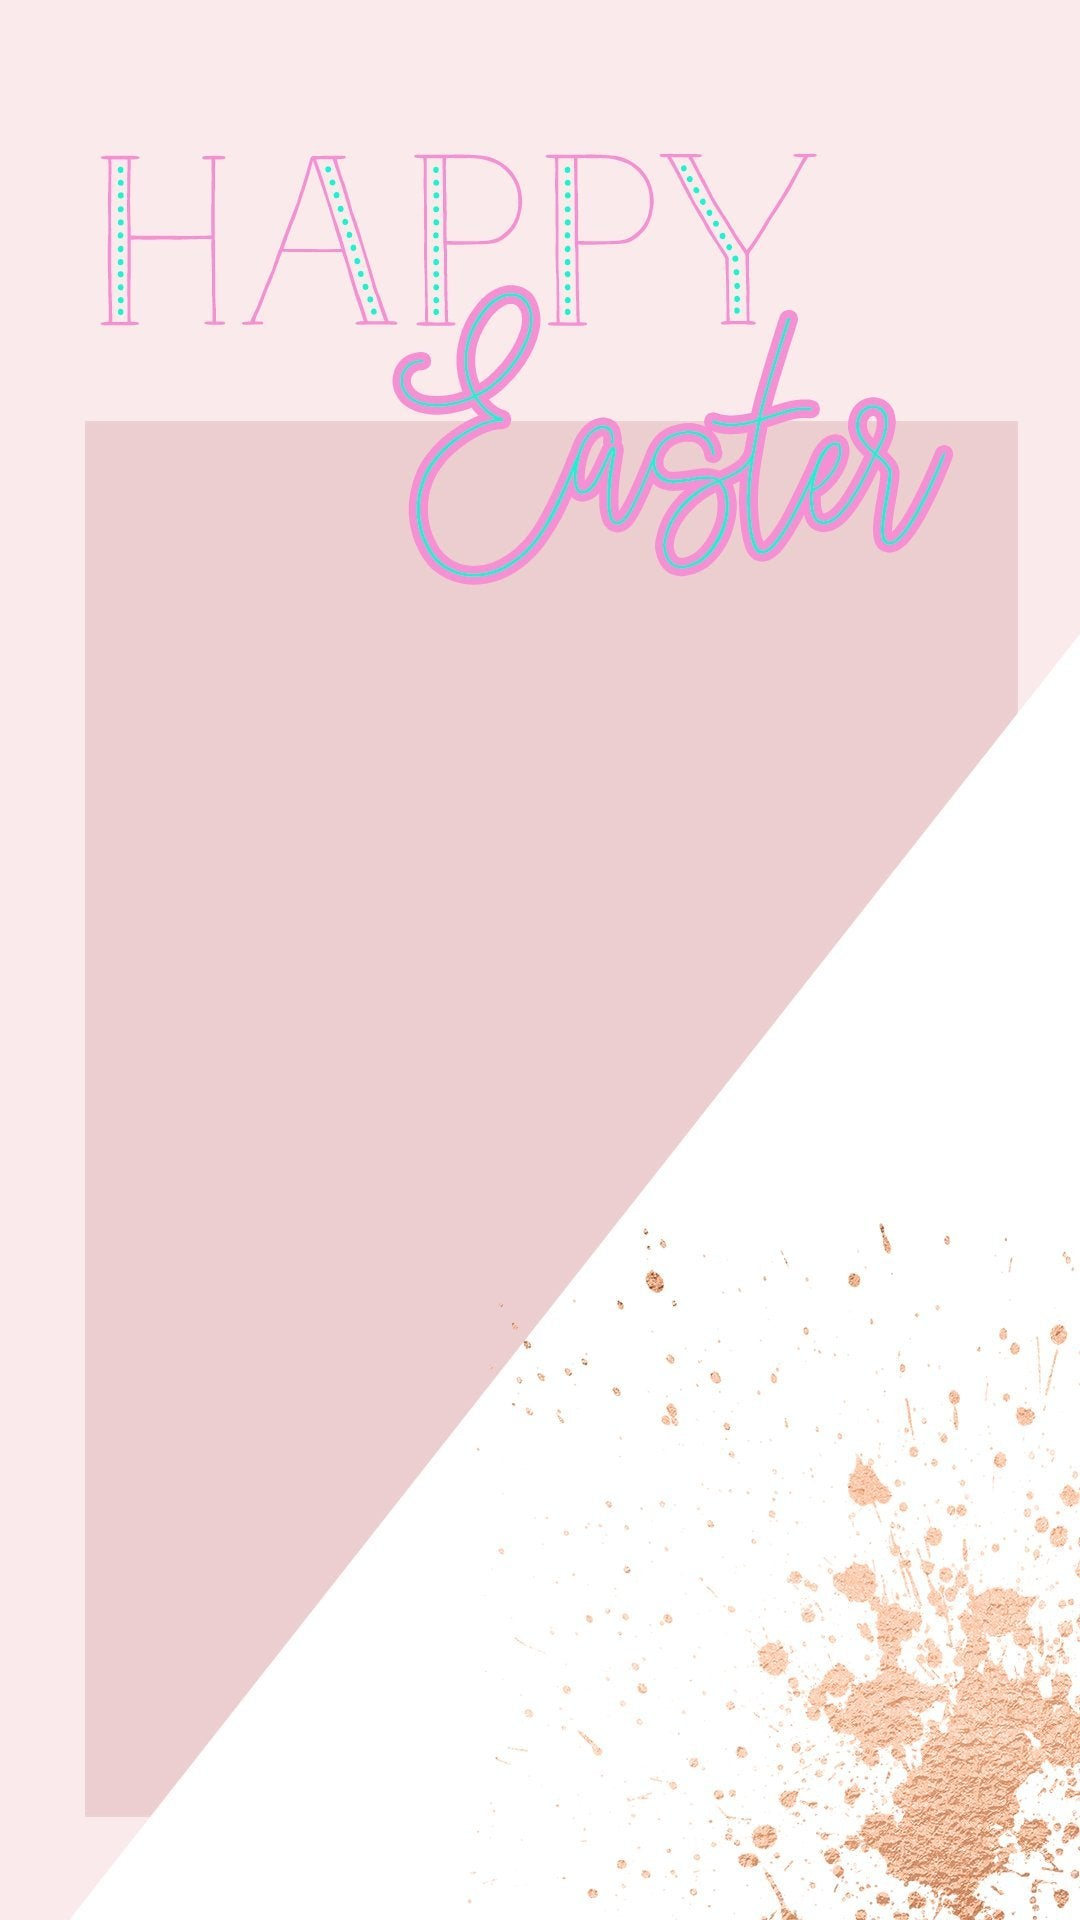 Easter Photo Template - FREE Instagram Stories Template - Pretty Collected